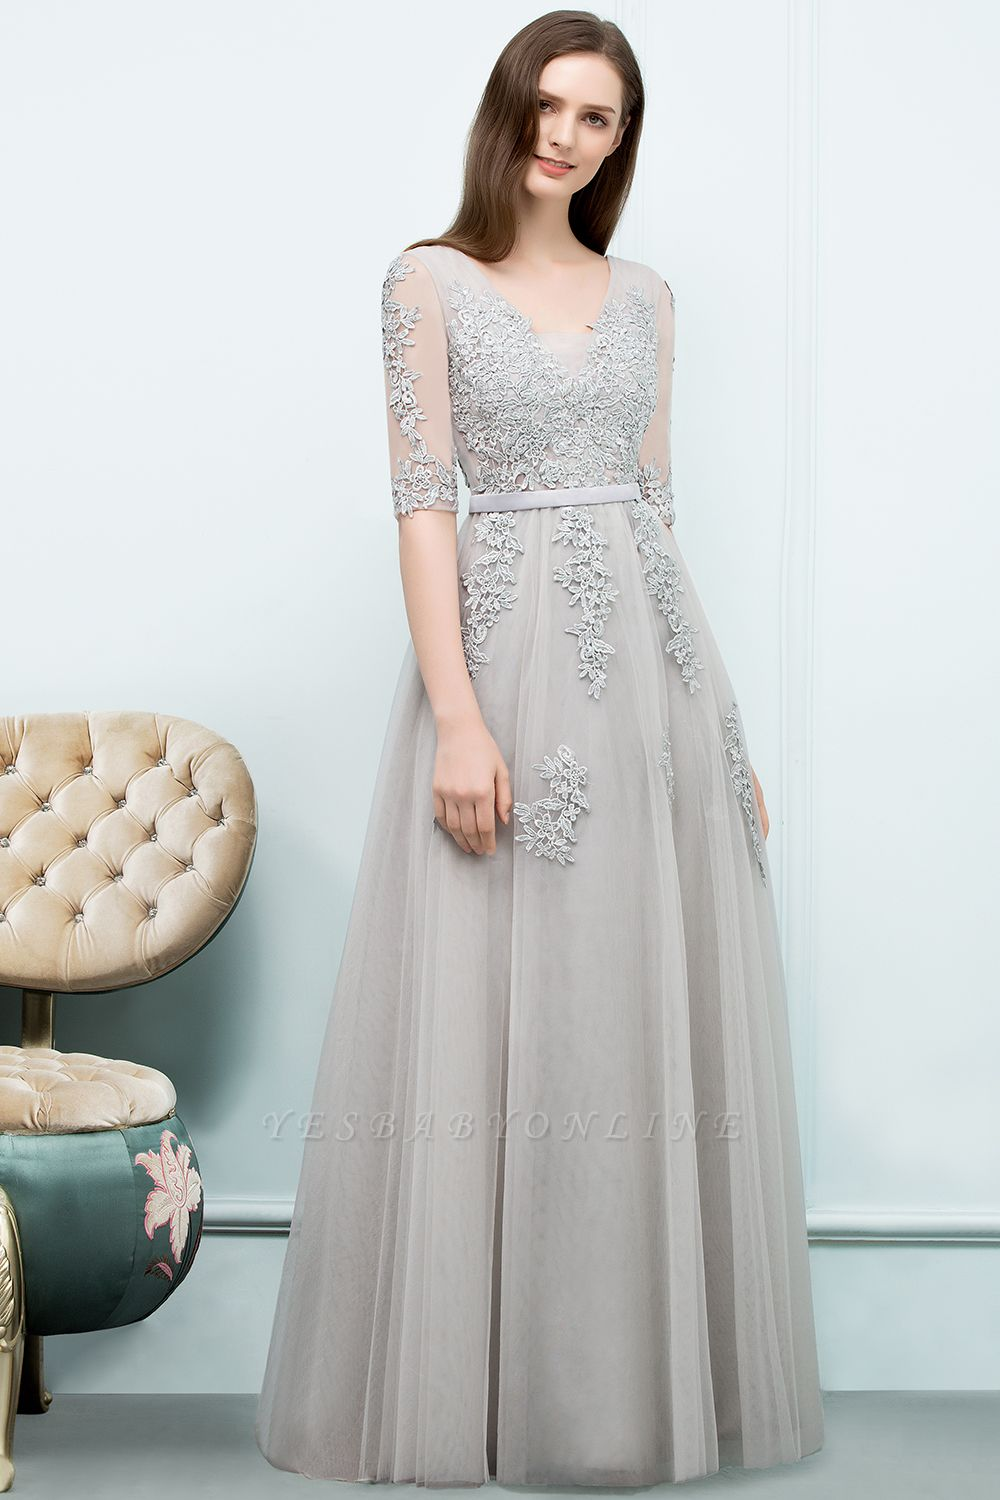 A-line Half-sleeve V-neck Floor Length Appliqued Tulle Prom Dress with Sash In Stock